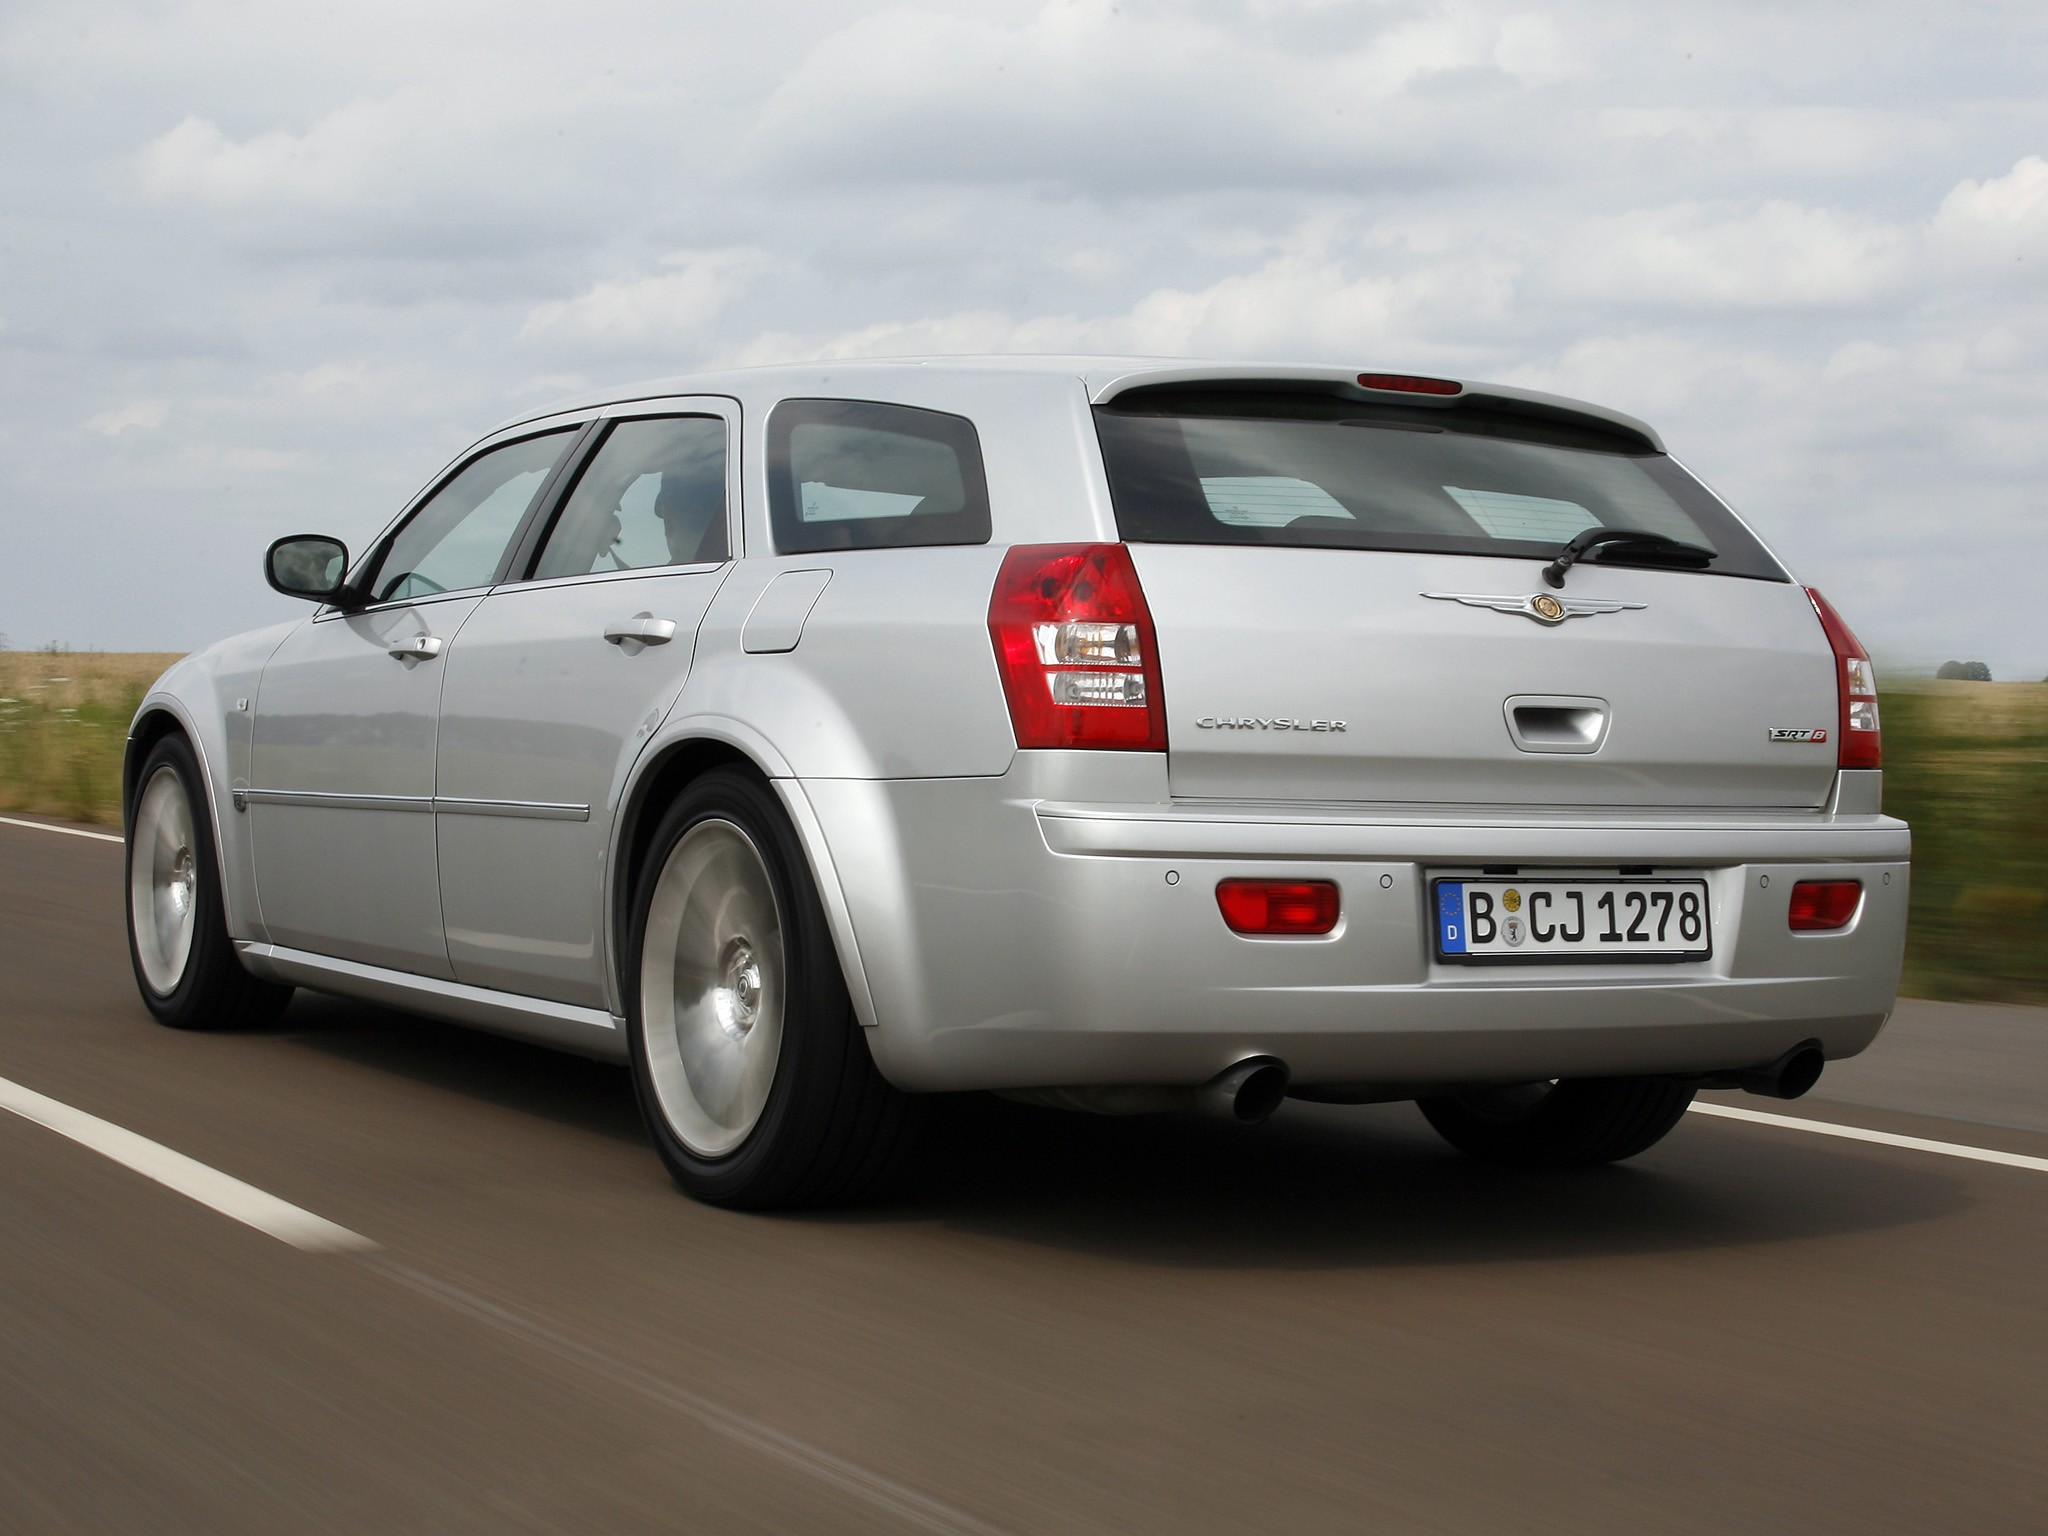 CHRYSLER 300C Touring SRT8 Specs